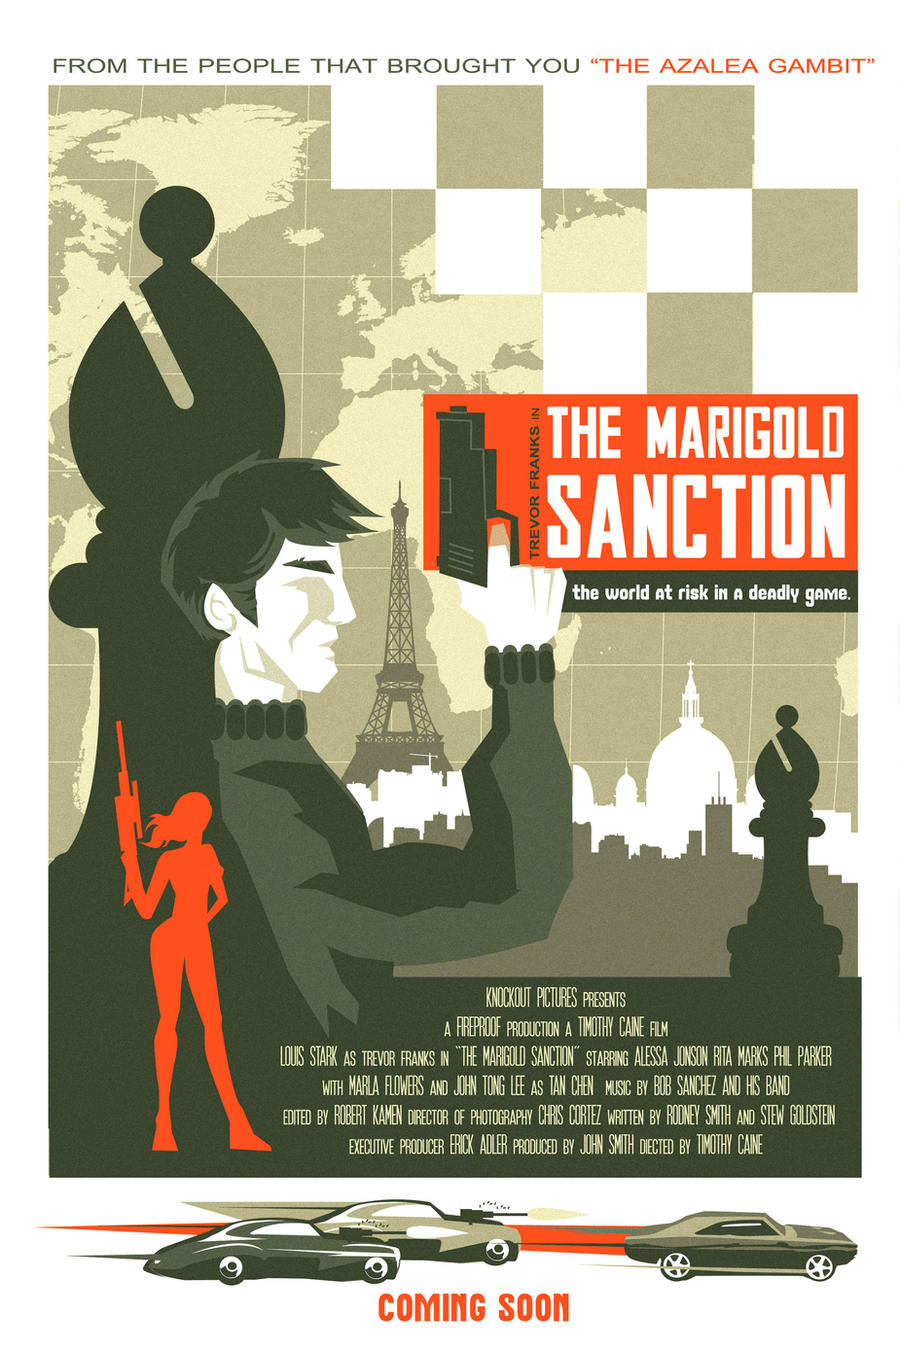 THE MARIGOLD SANCTION poster